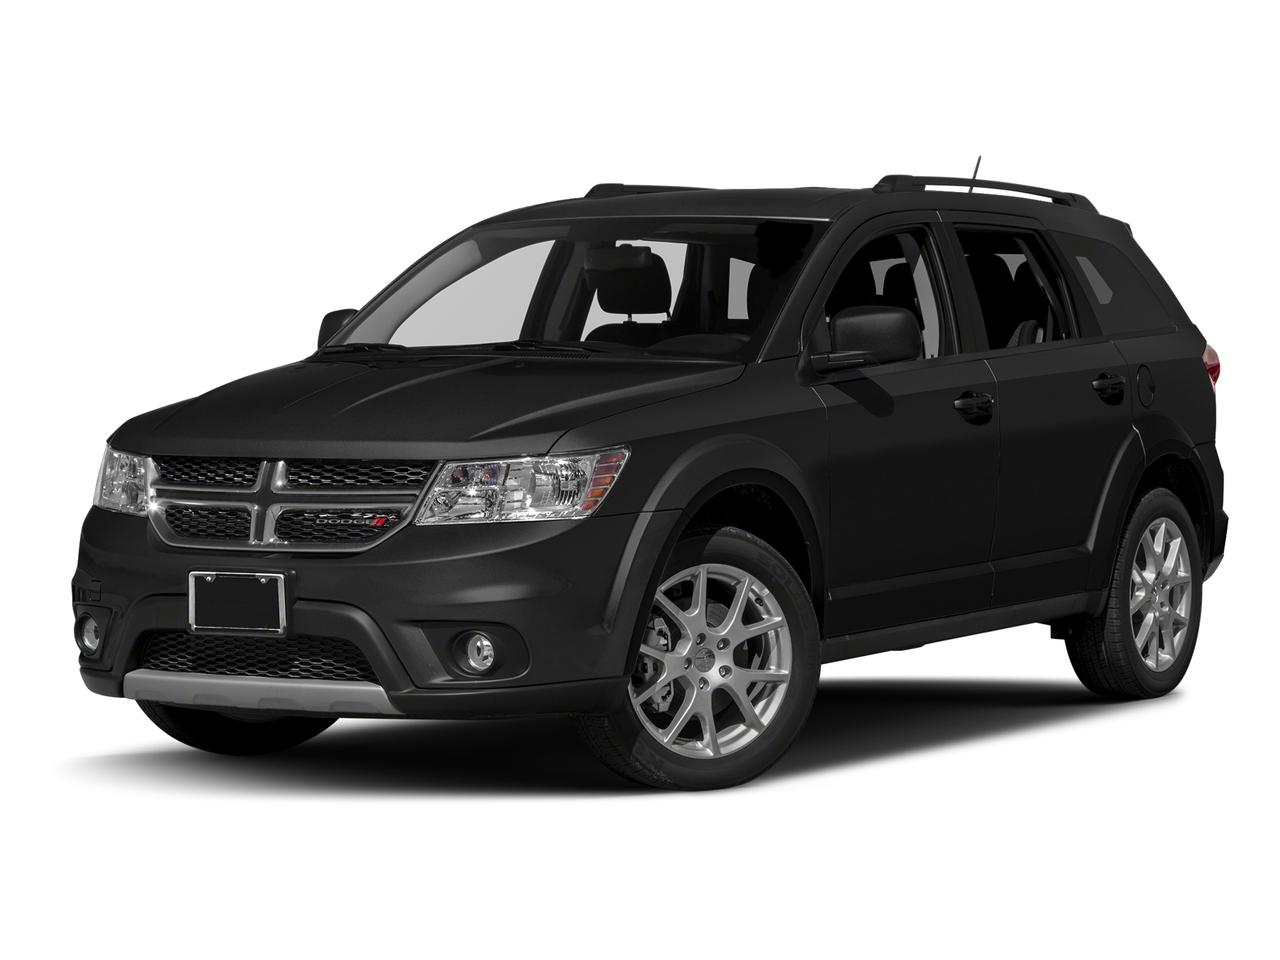 2016 Dodge Journey Vehicle Photo in San Antonio, TX 78230